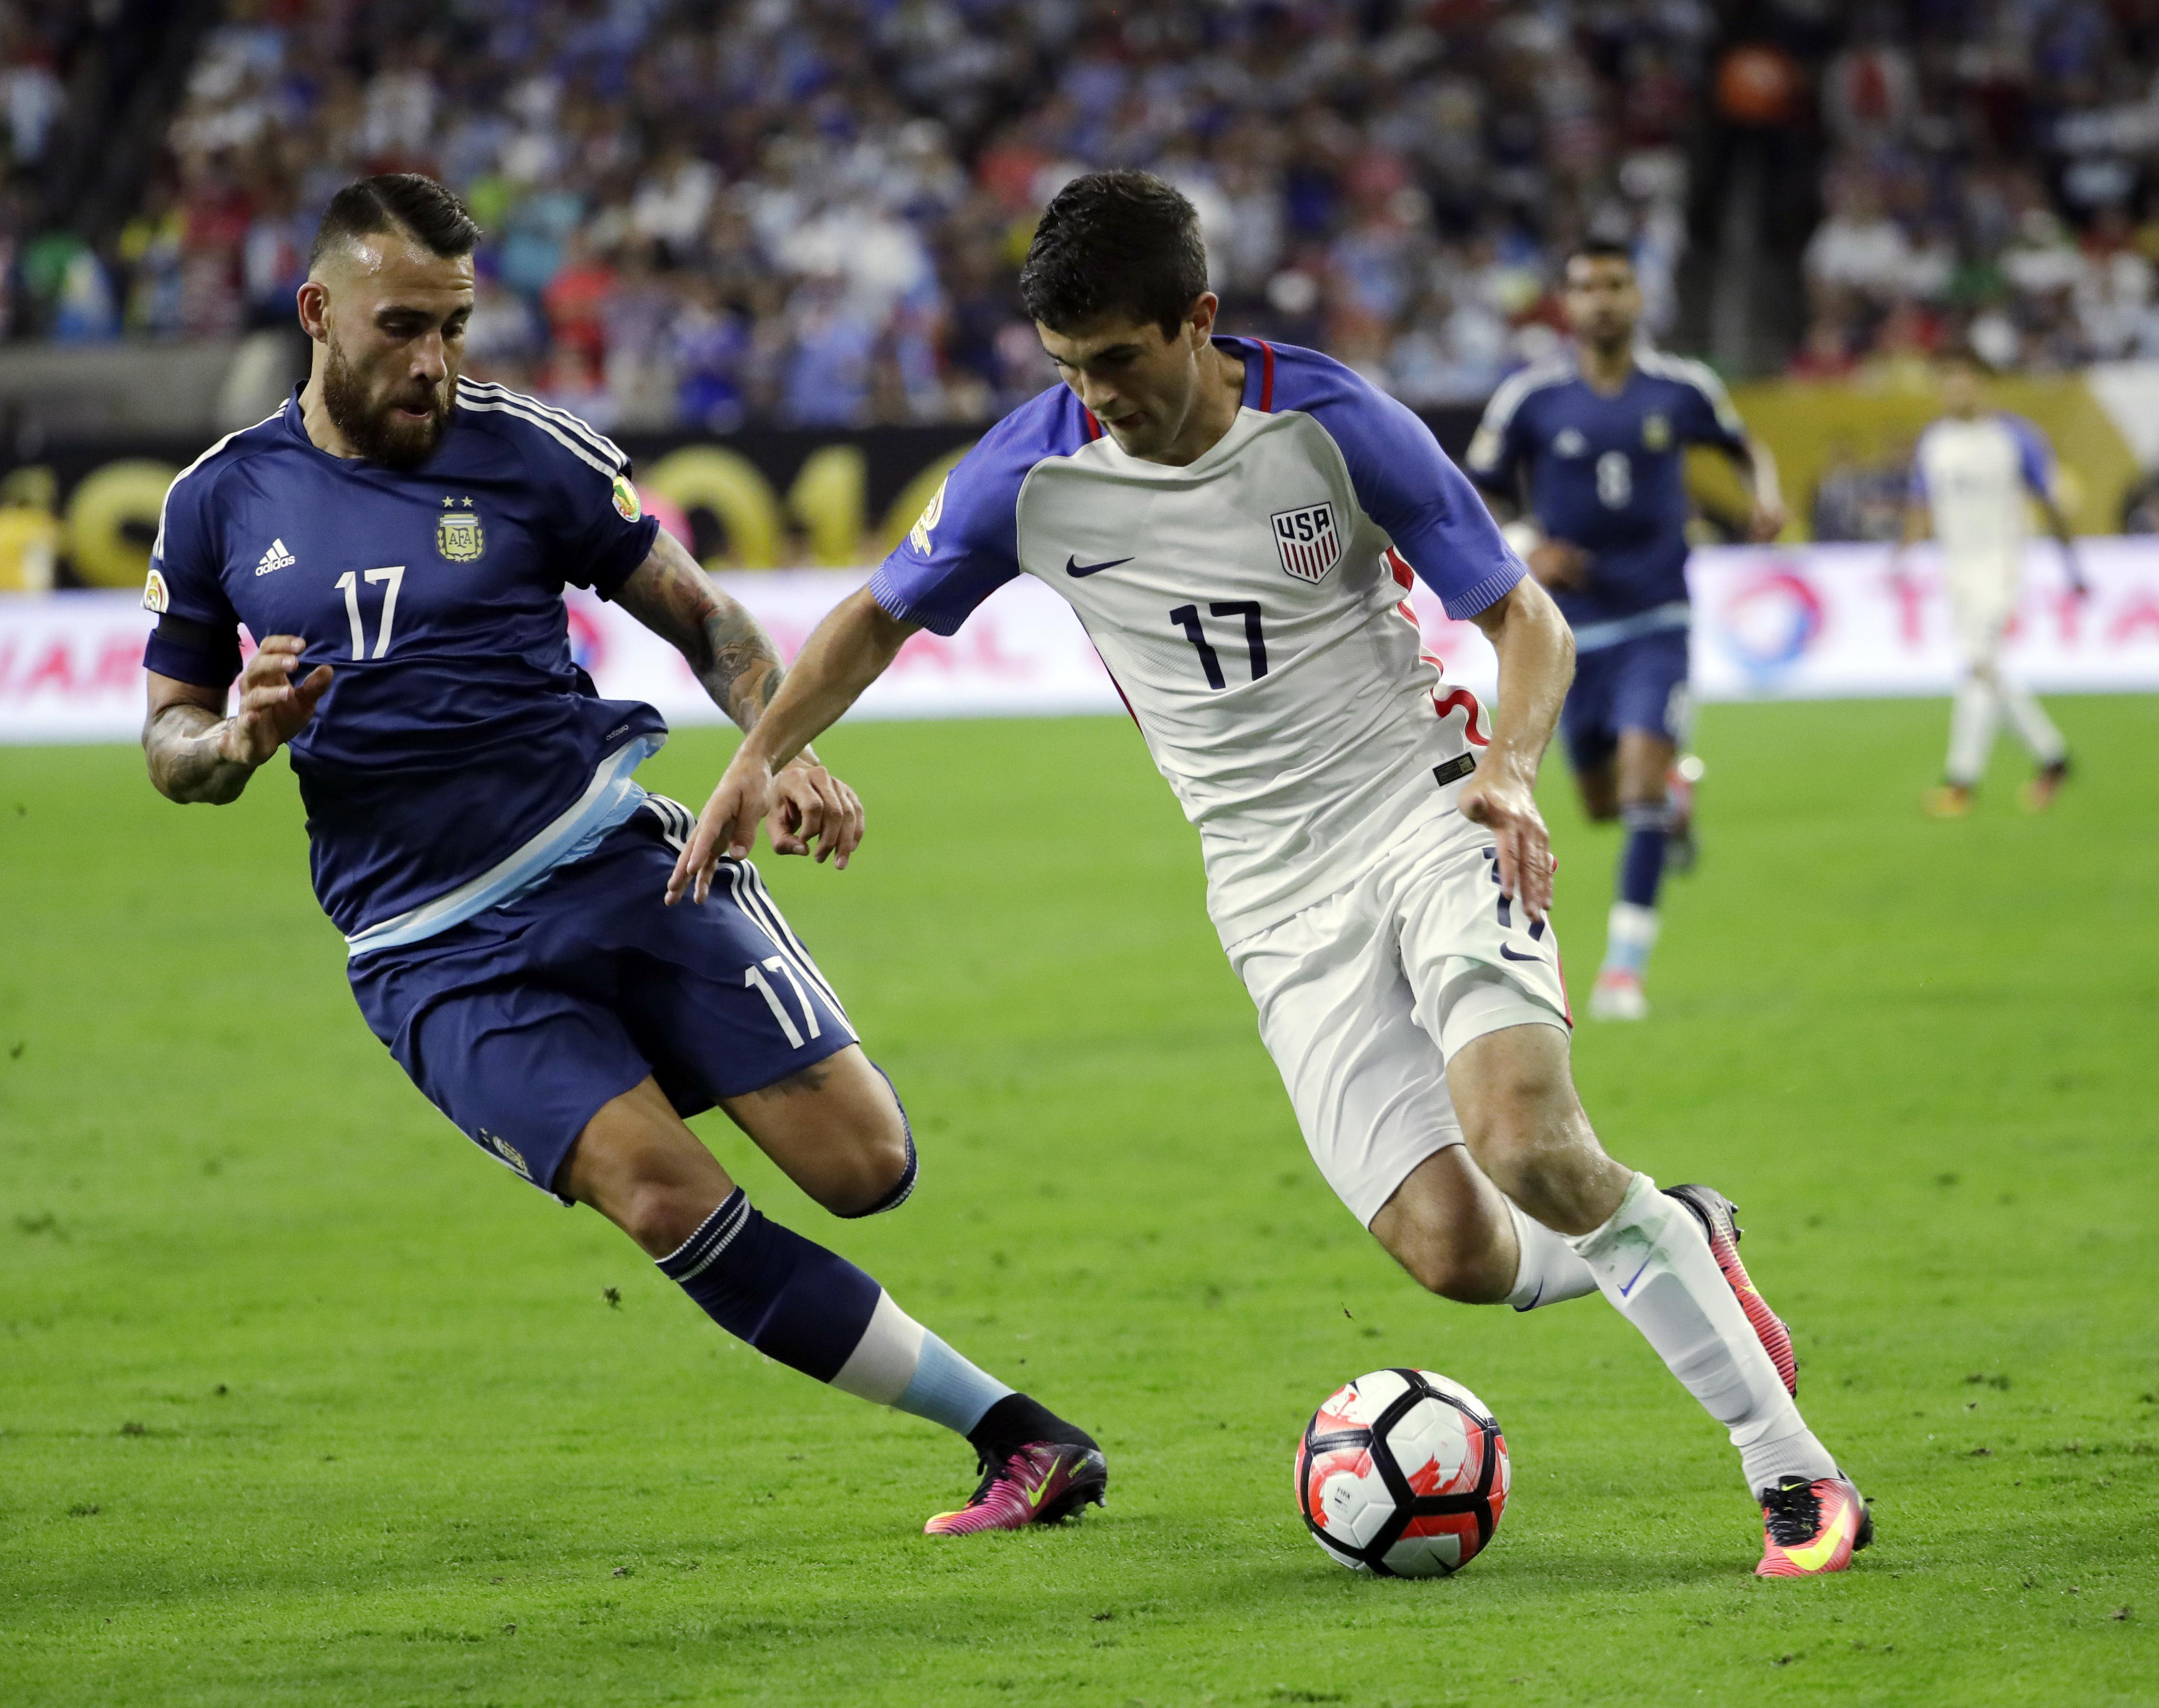 Pulisic made his debut for the USMNT back in March 2016